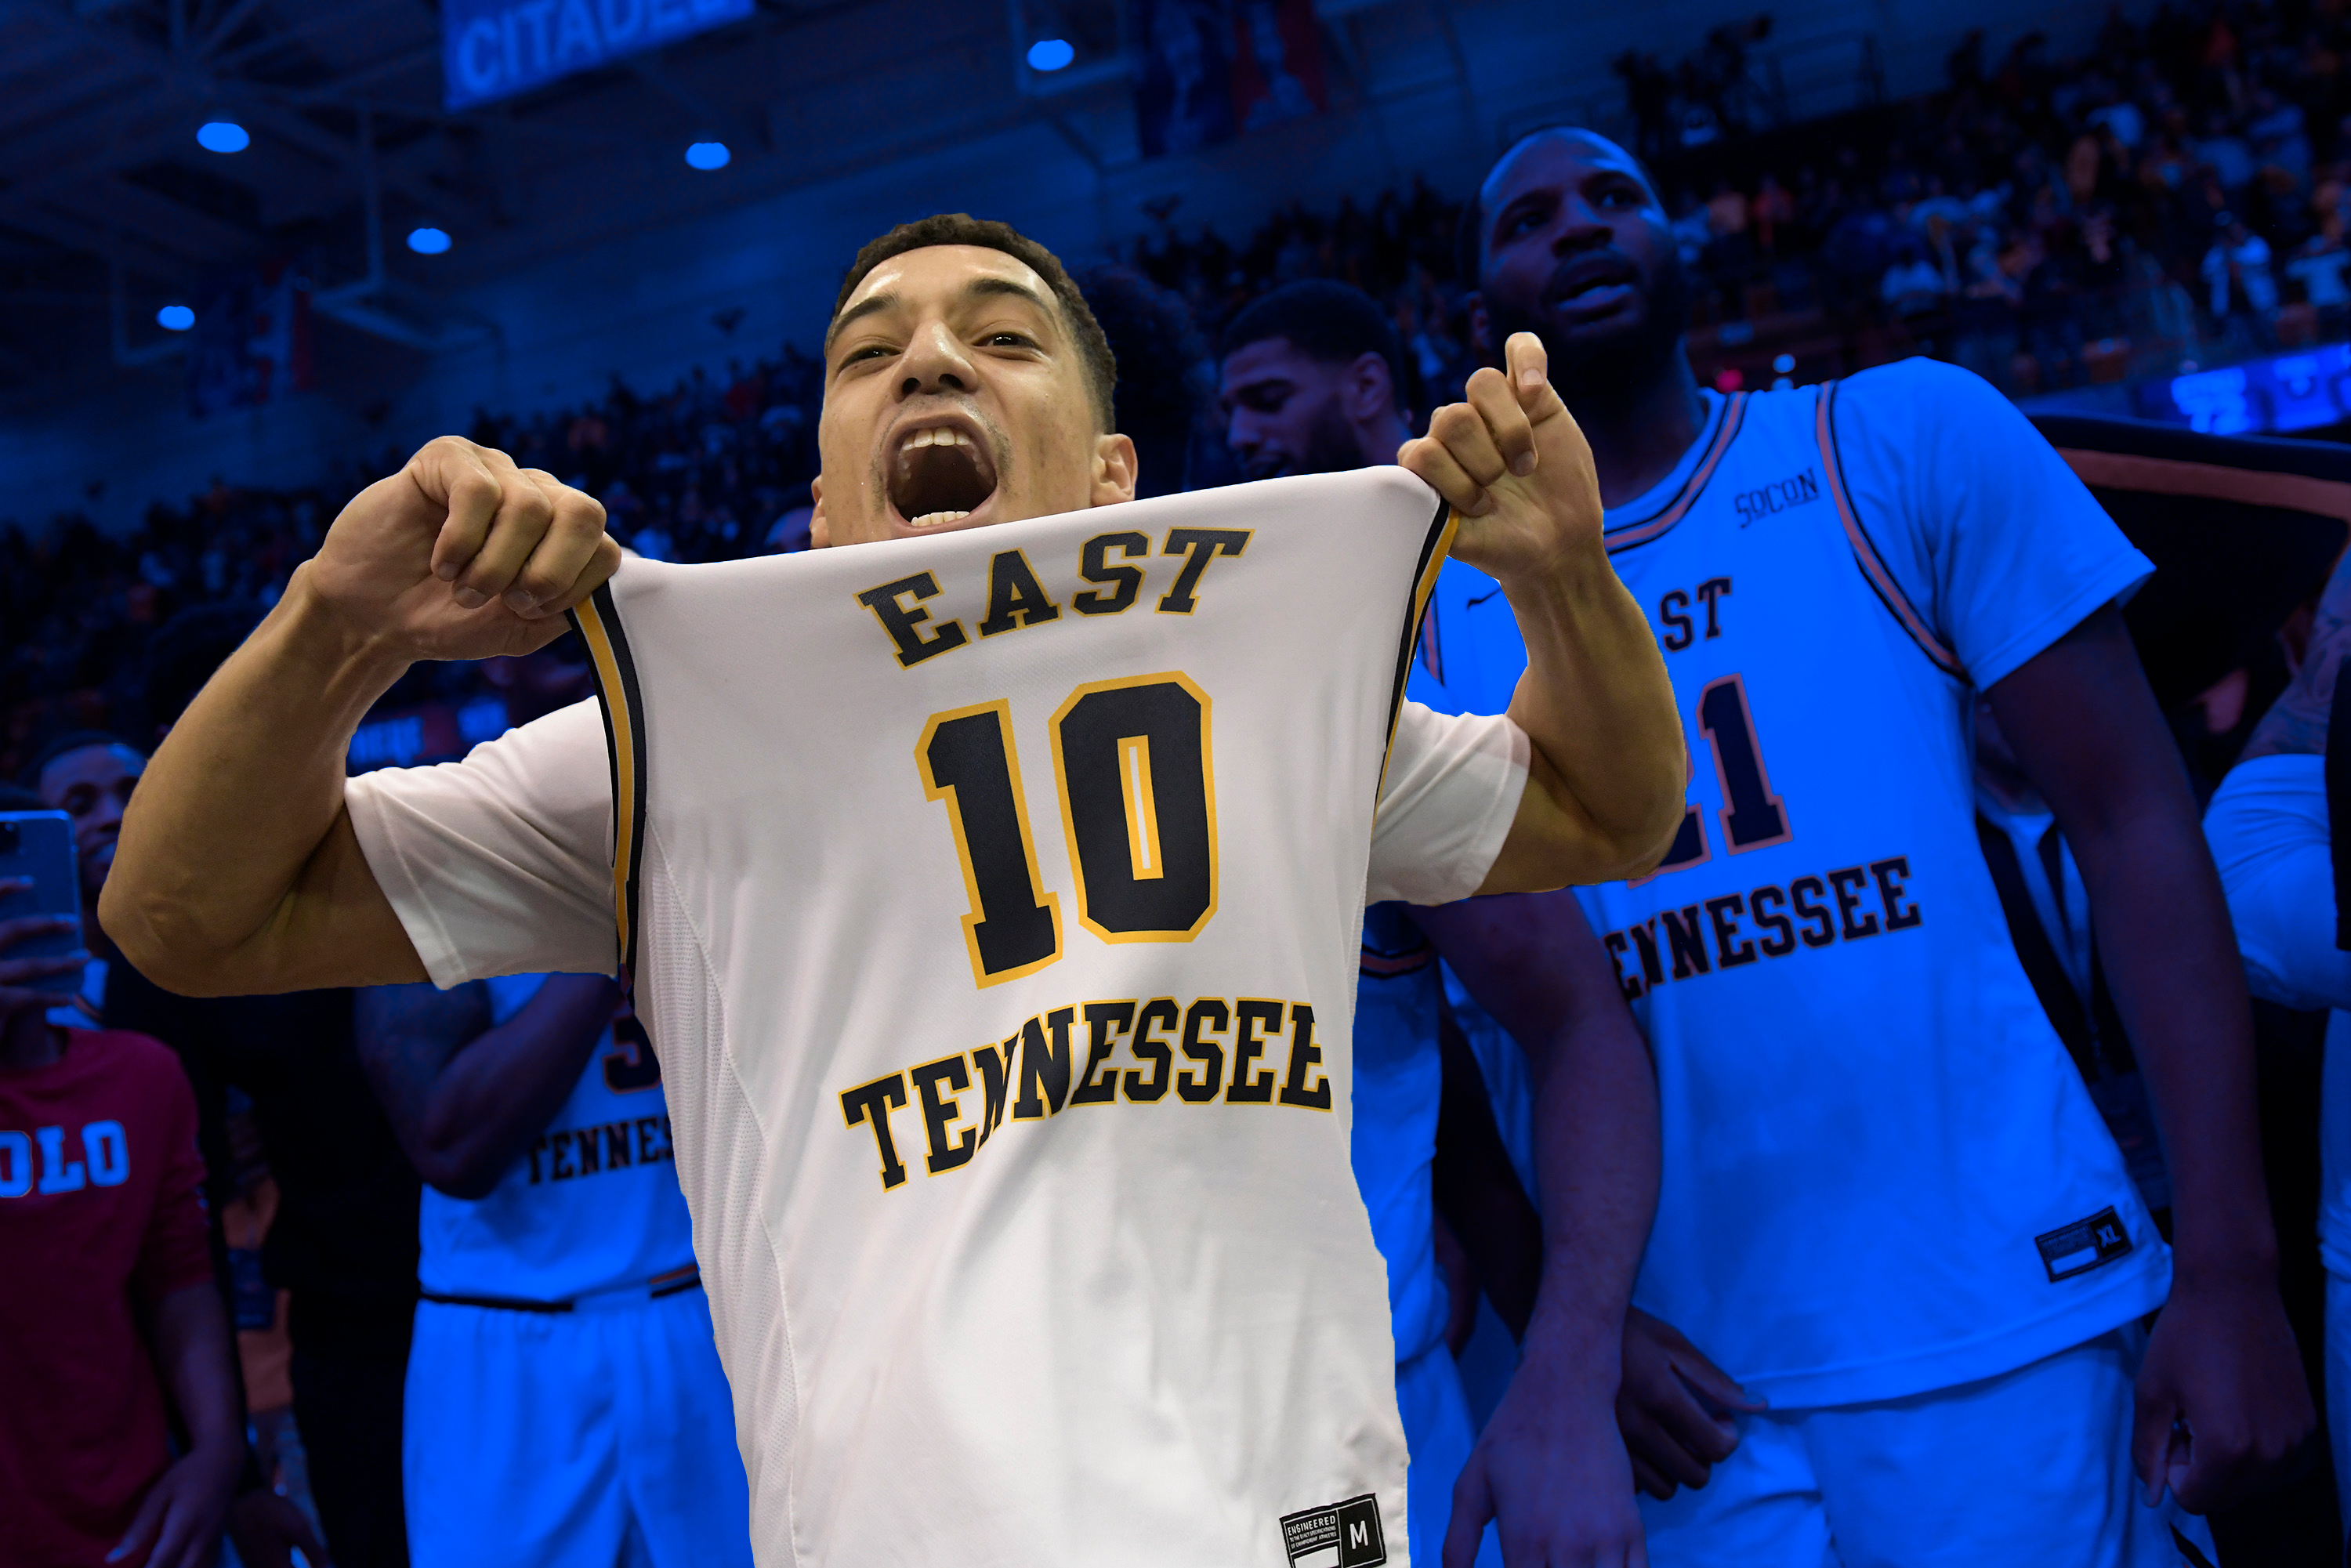 East Tennessee State basketball celebrates.